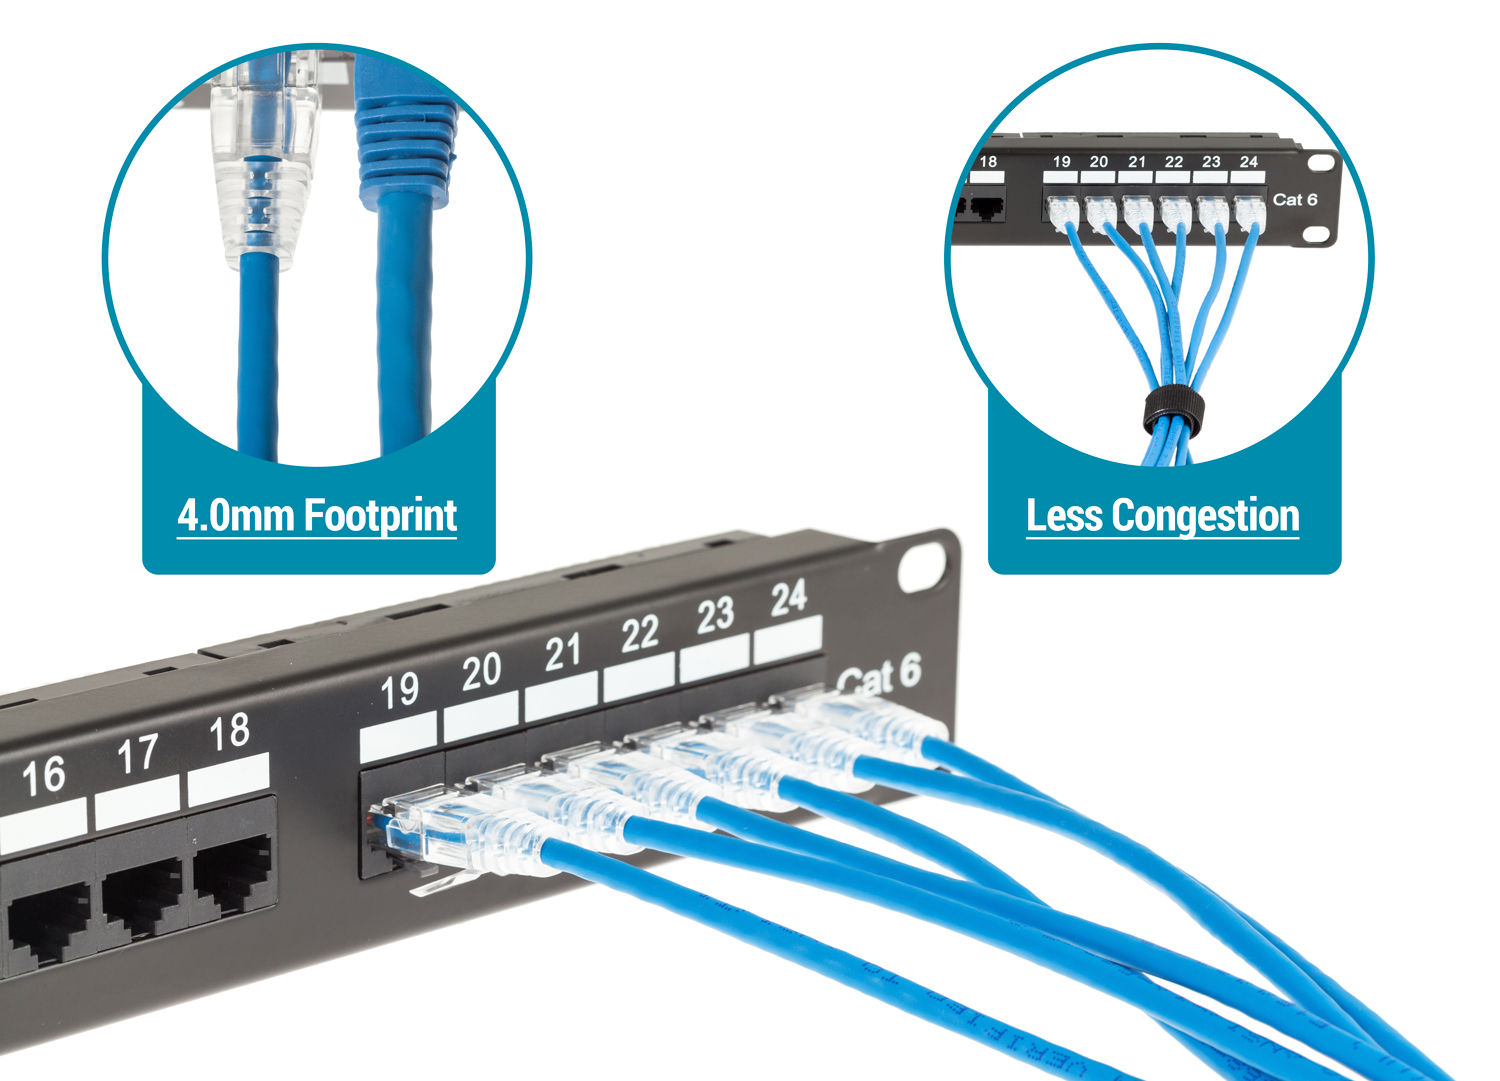 hight resolution of our cat6 slim ethernet patch cables are the perfect solution for high density installations in data centers or any network setup where space is limited